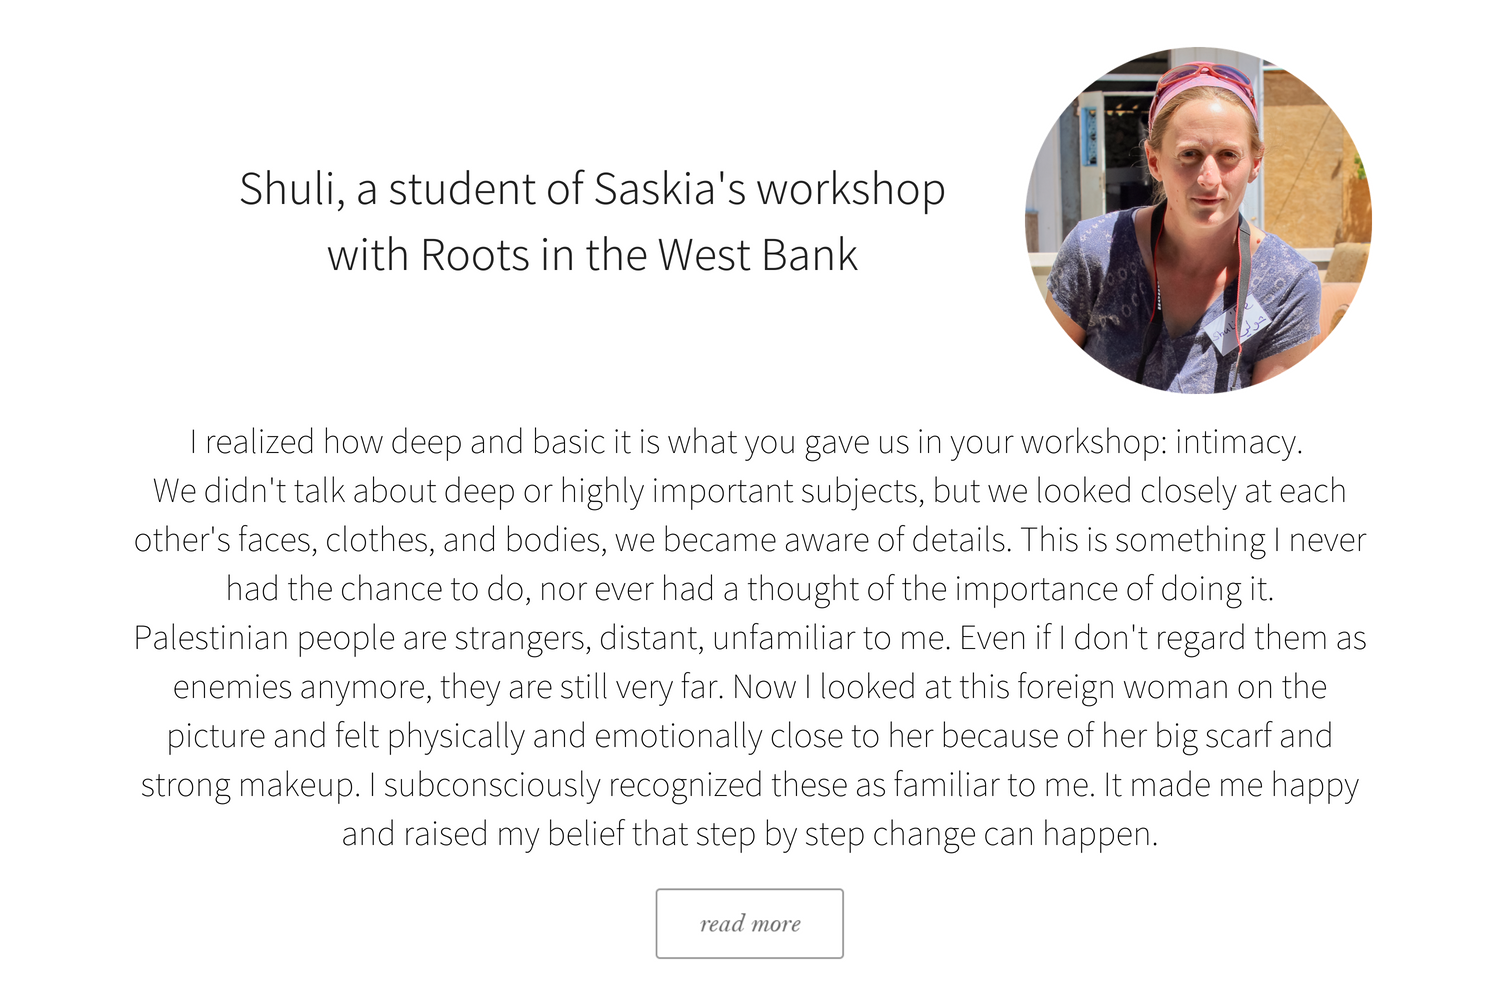 saskia-keeley-photography-humanitarian-documentarian-shuli-roots-ngo-student-testimonial.png